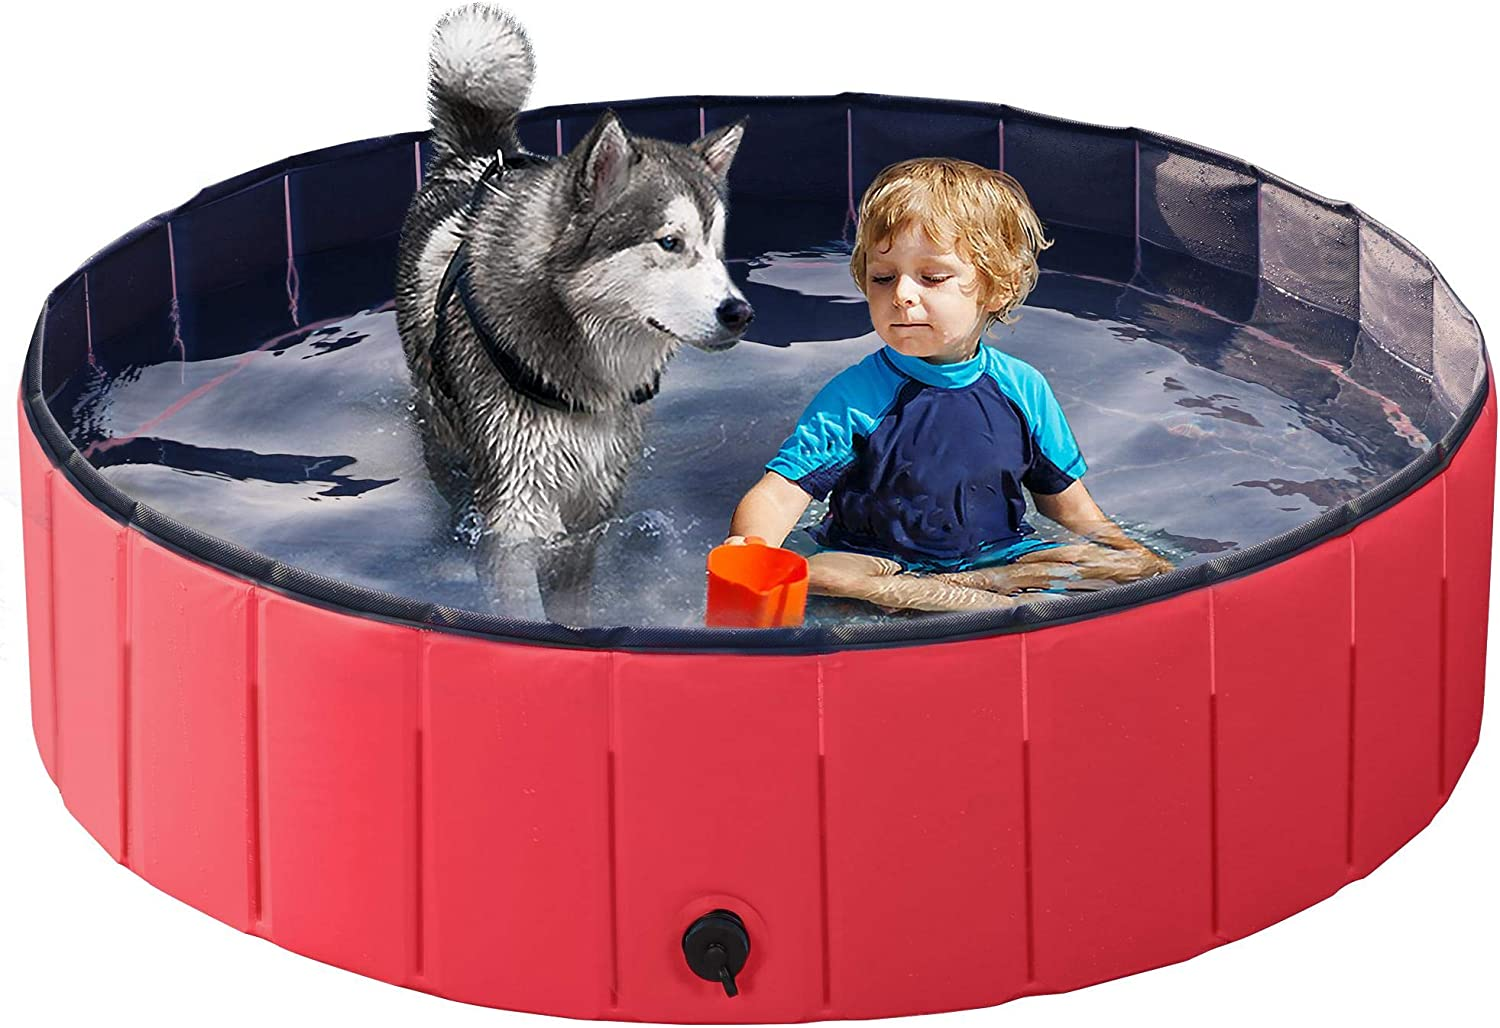 YAHEETECH Red Foldable Hard Plastic Kiddie Baby Large Dog Pet Bath Swimming Pool Collapsible Dog Pet Pool Bathing Tub Kiddie Pool for Kids Pets Dogs Cats